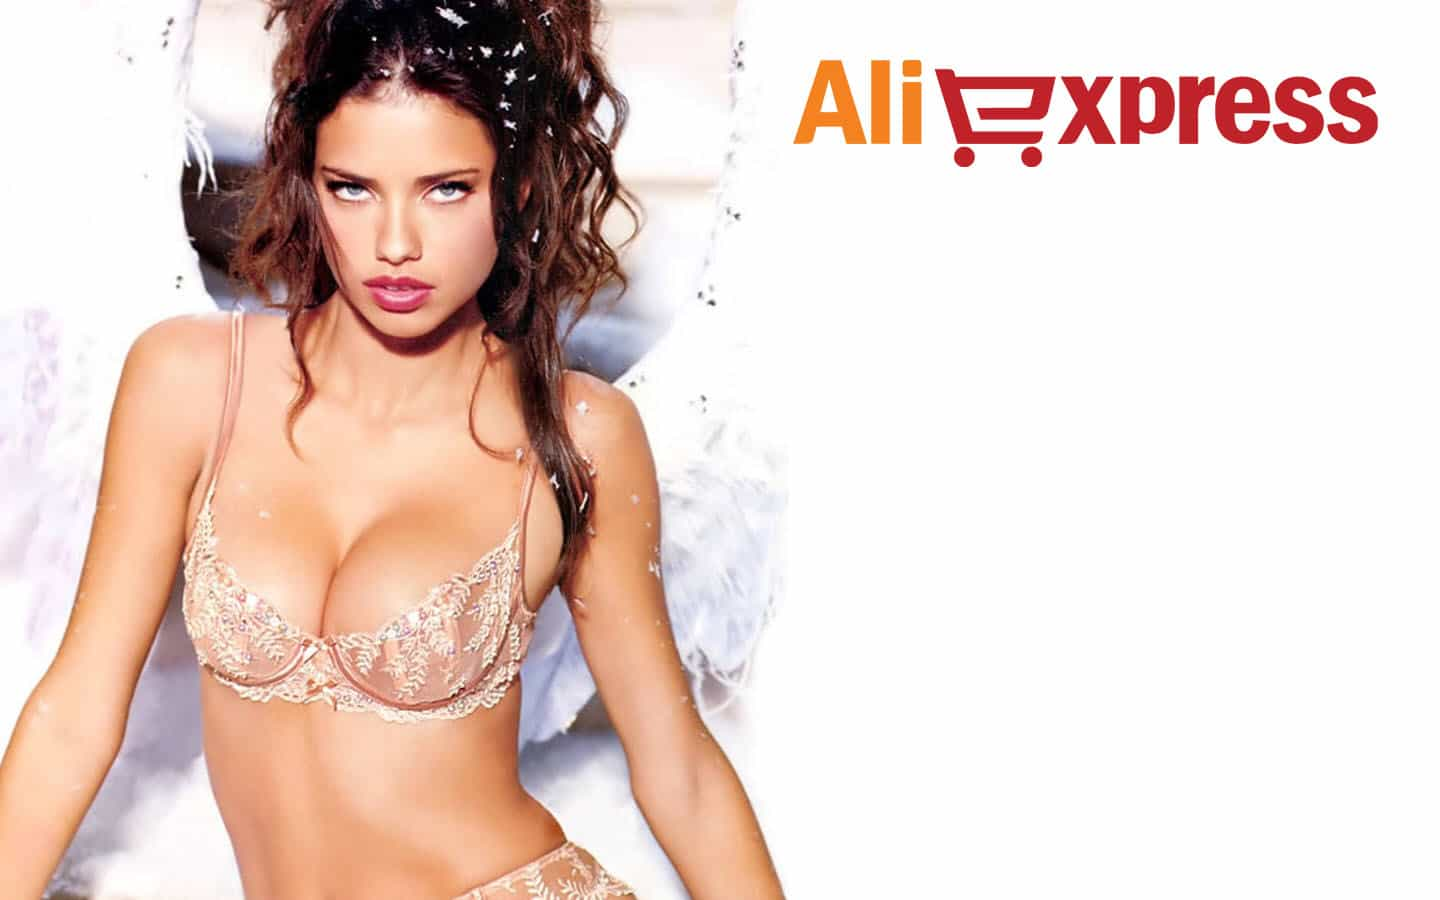 And Aliexpress Lingerie Online Cheap Sexy On 2019 Erotic E2e9YWbHDI